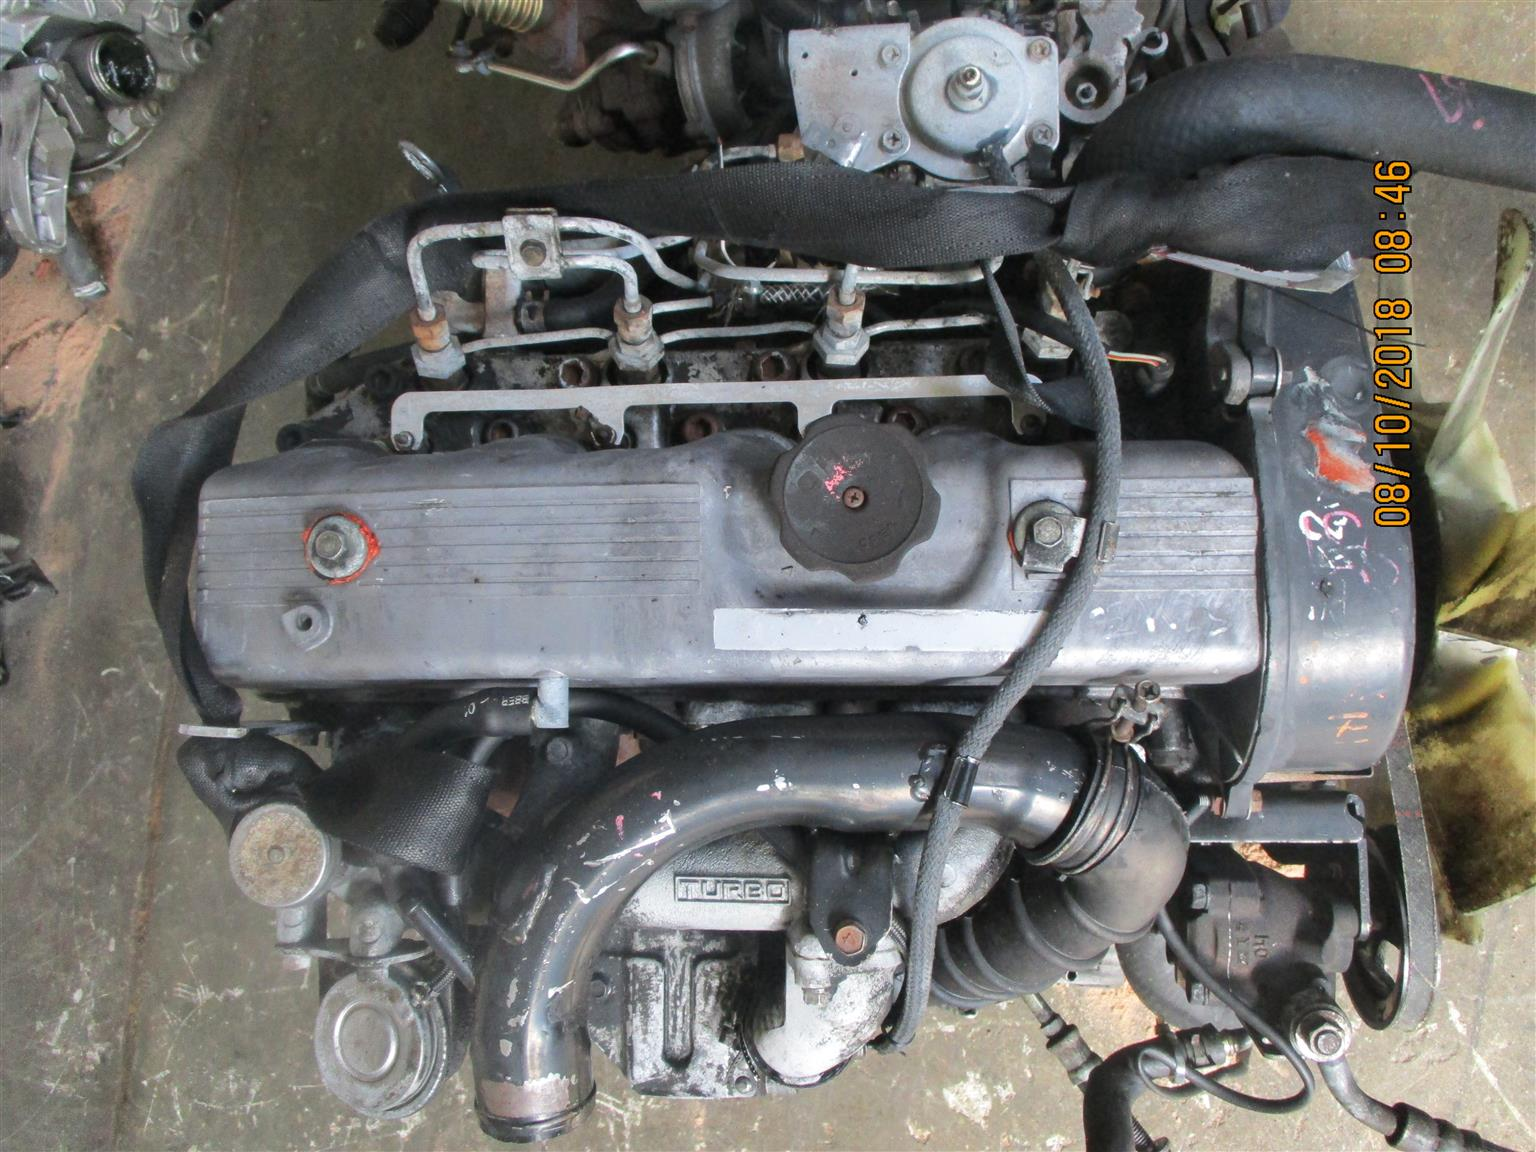 Mitsubishi Rodeo 2 6D 4D56 engine for sale